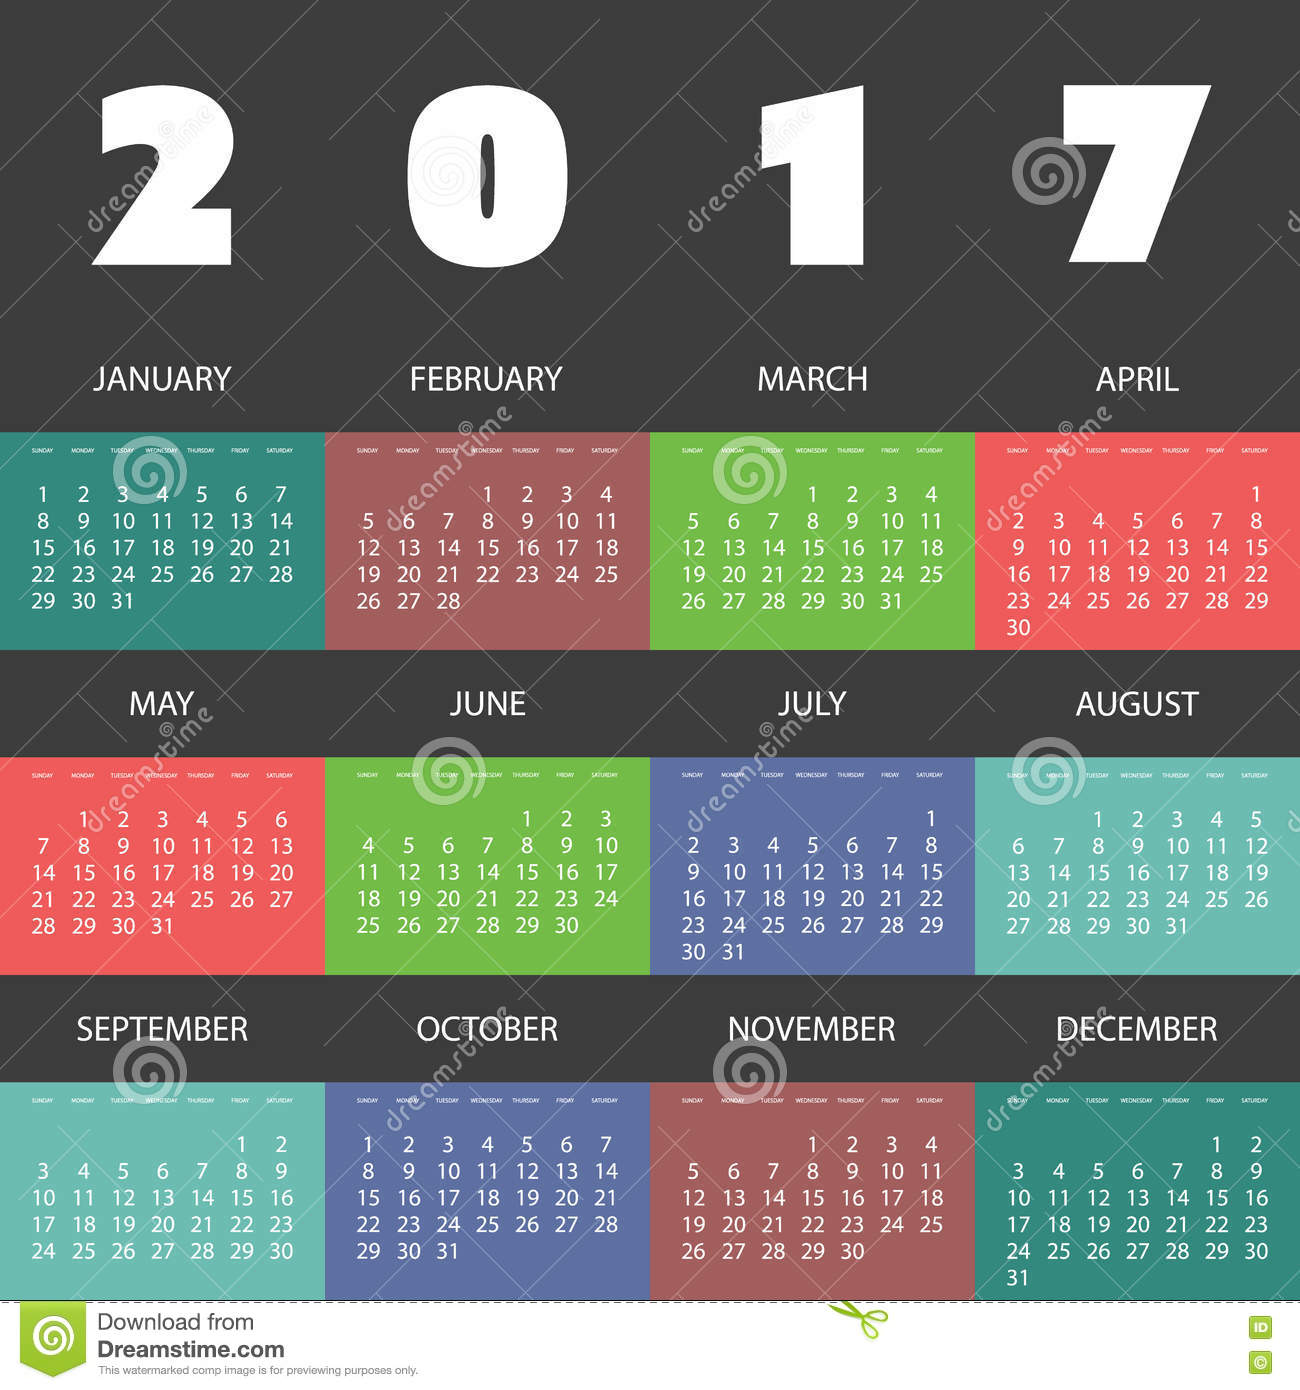 Monthly Calendar Design Creative : Colorful calendar design with different backgrounds